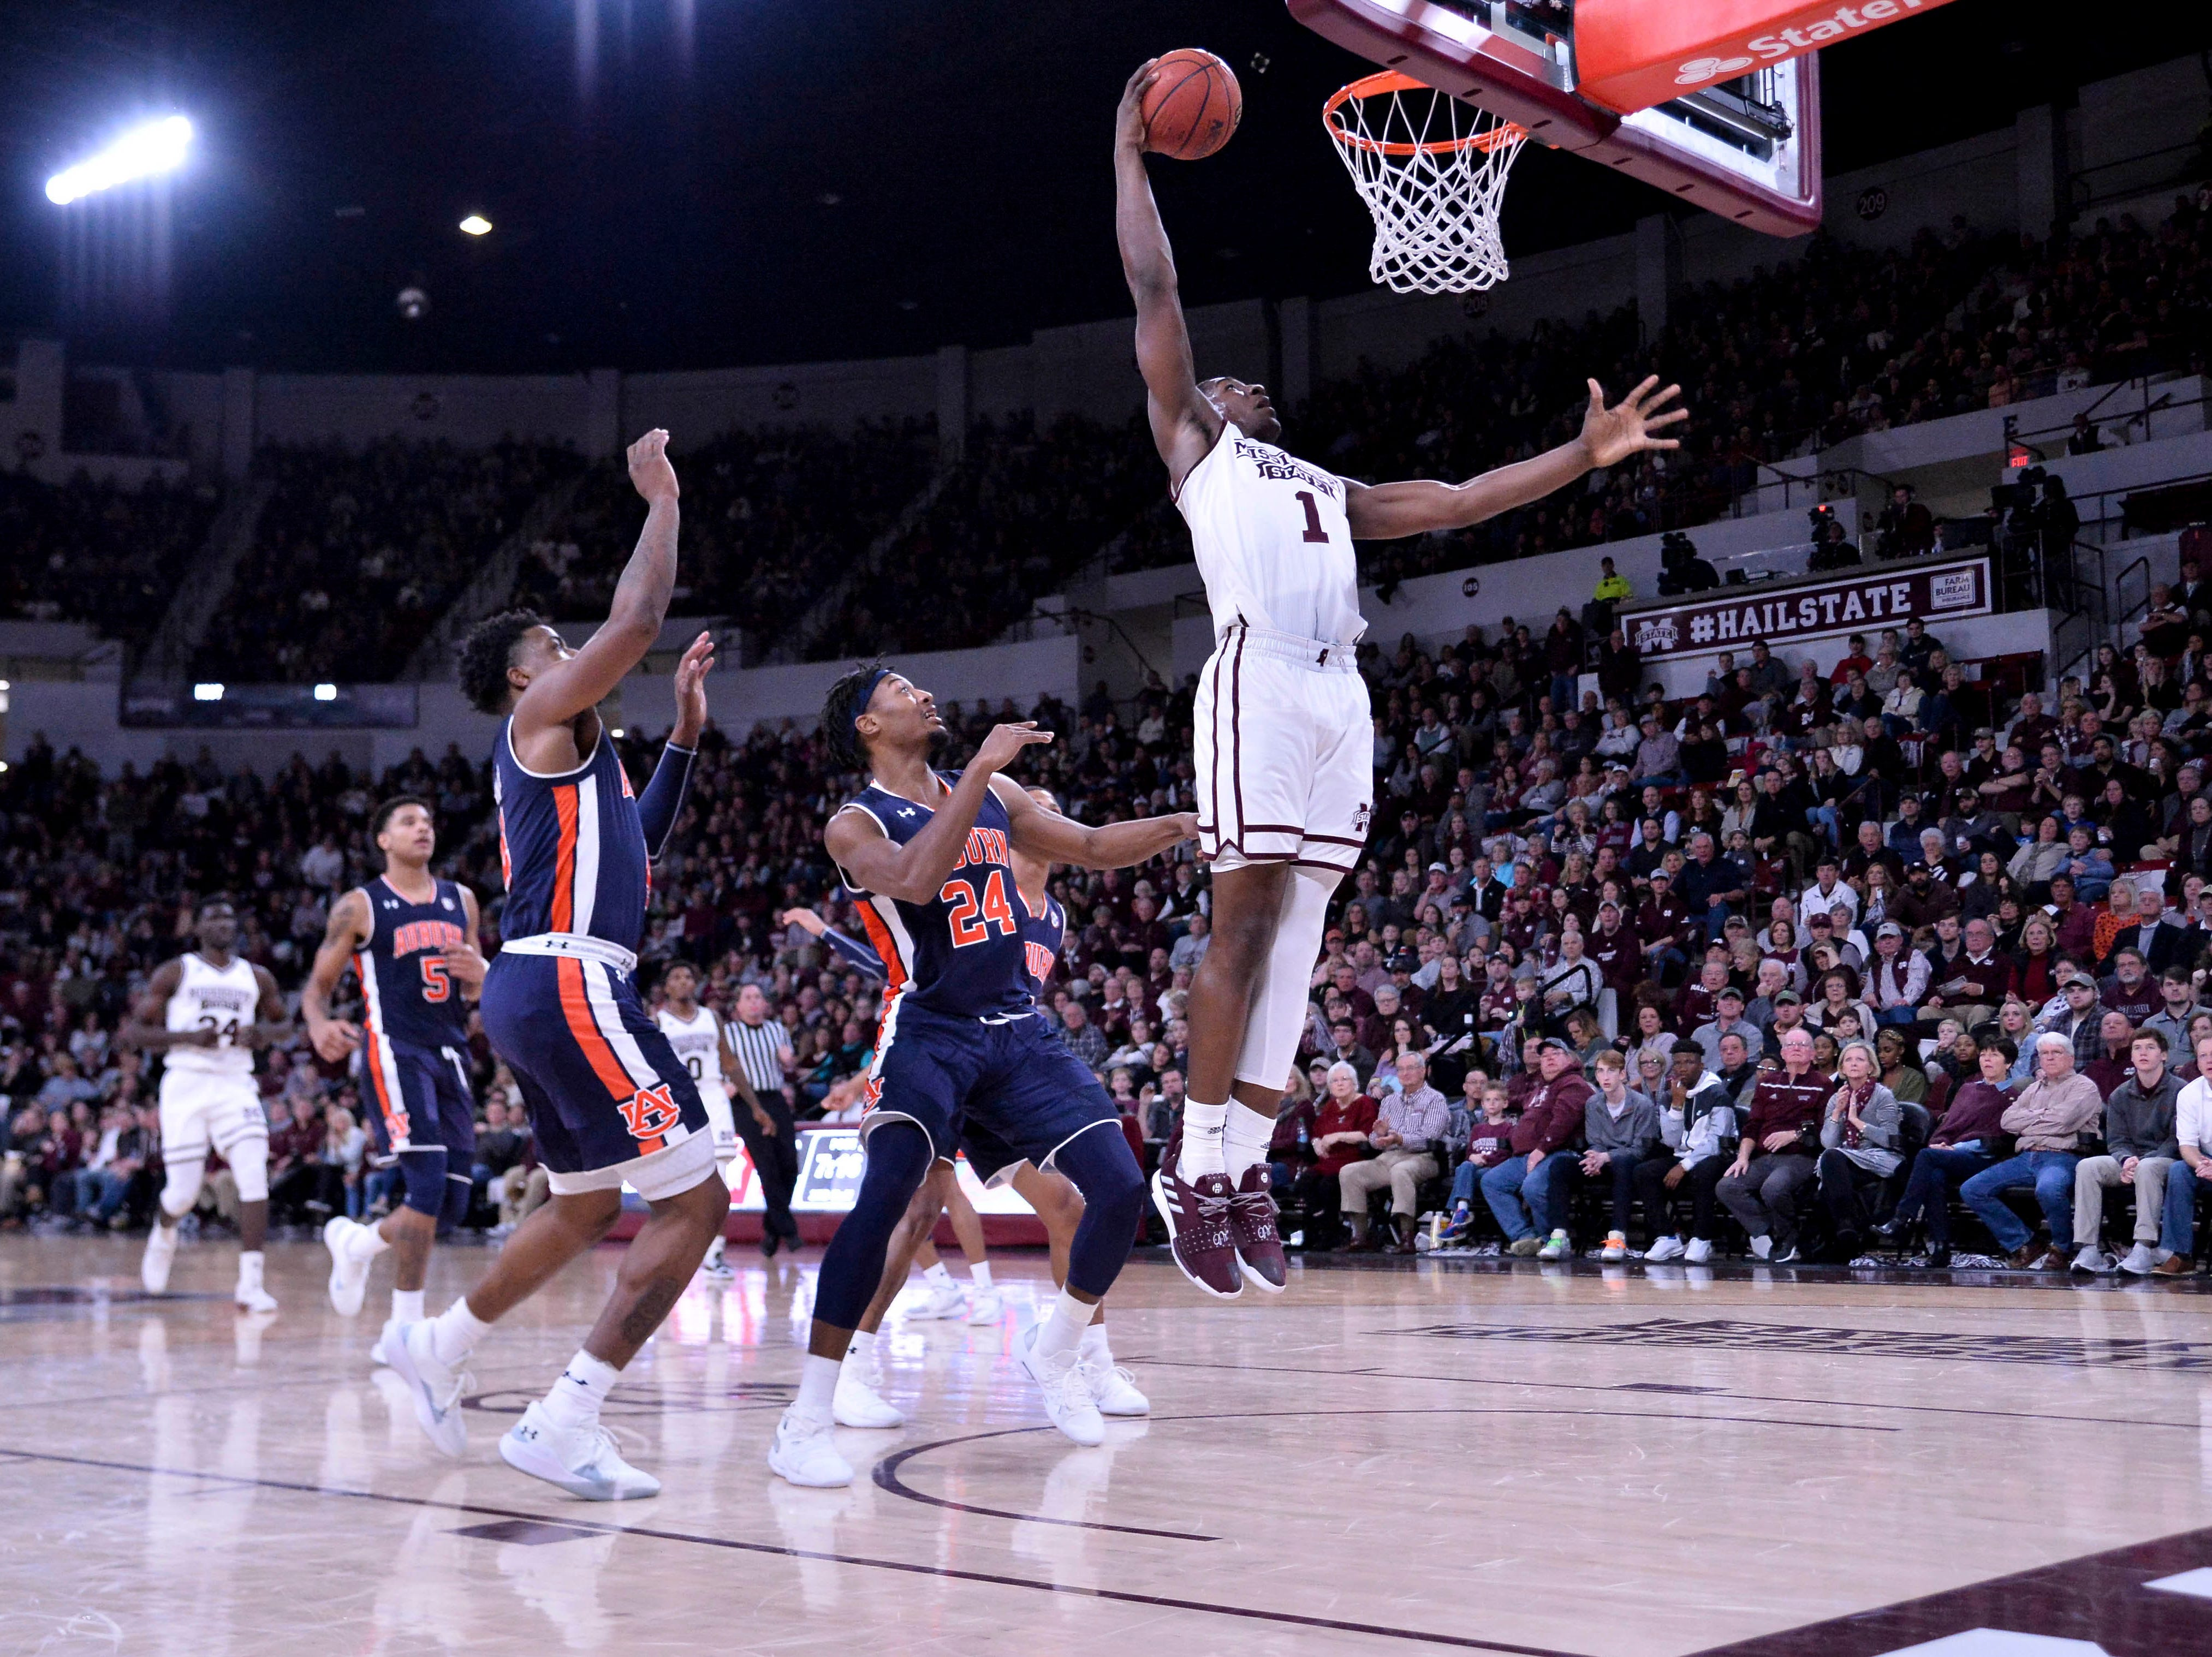 Mississippi State forward Reggie Perry (1) dunks against Auburn guard Malik Dunbar (4) and forward Anfernee McLemore (24) at Humphrey Coliseum on Jan. 26, 2019, in Starkville, Miss.